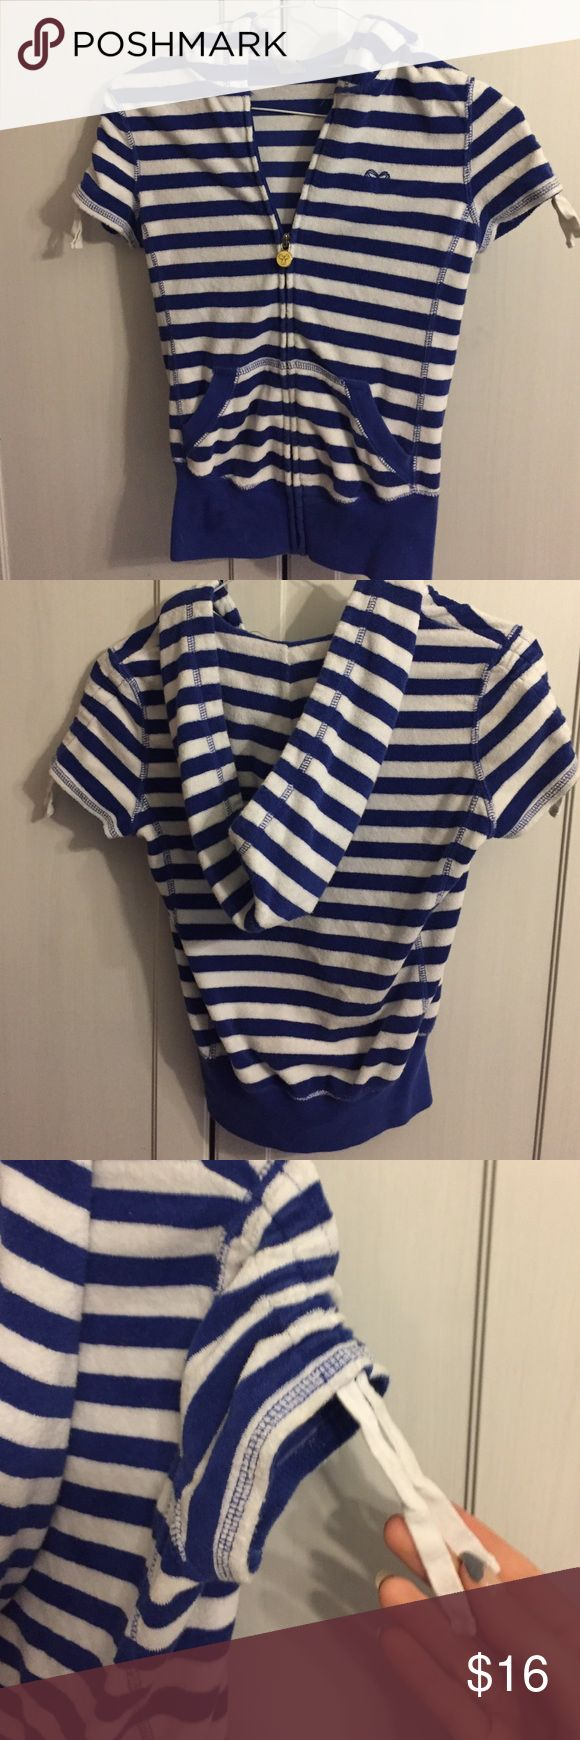 TNA (Aritzia) short sleeve zip up sweater This is a unique type of sportswear/swimwear cover up made of a cotton like material that mimics the feel of a towel. With a nautical theme of blue and white stripes. Aritzia Sweaters